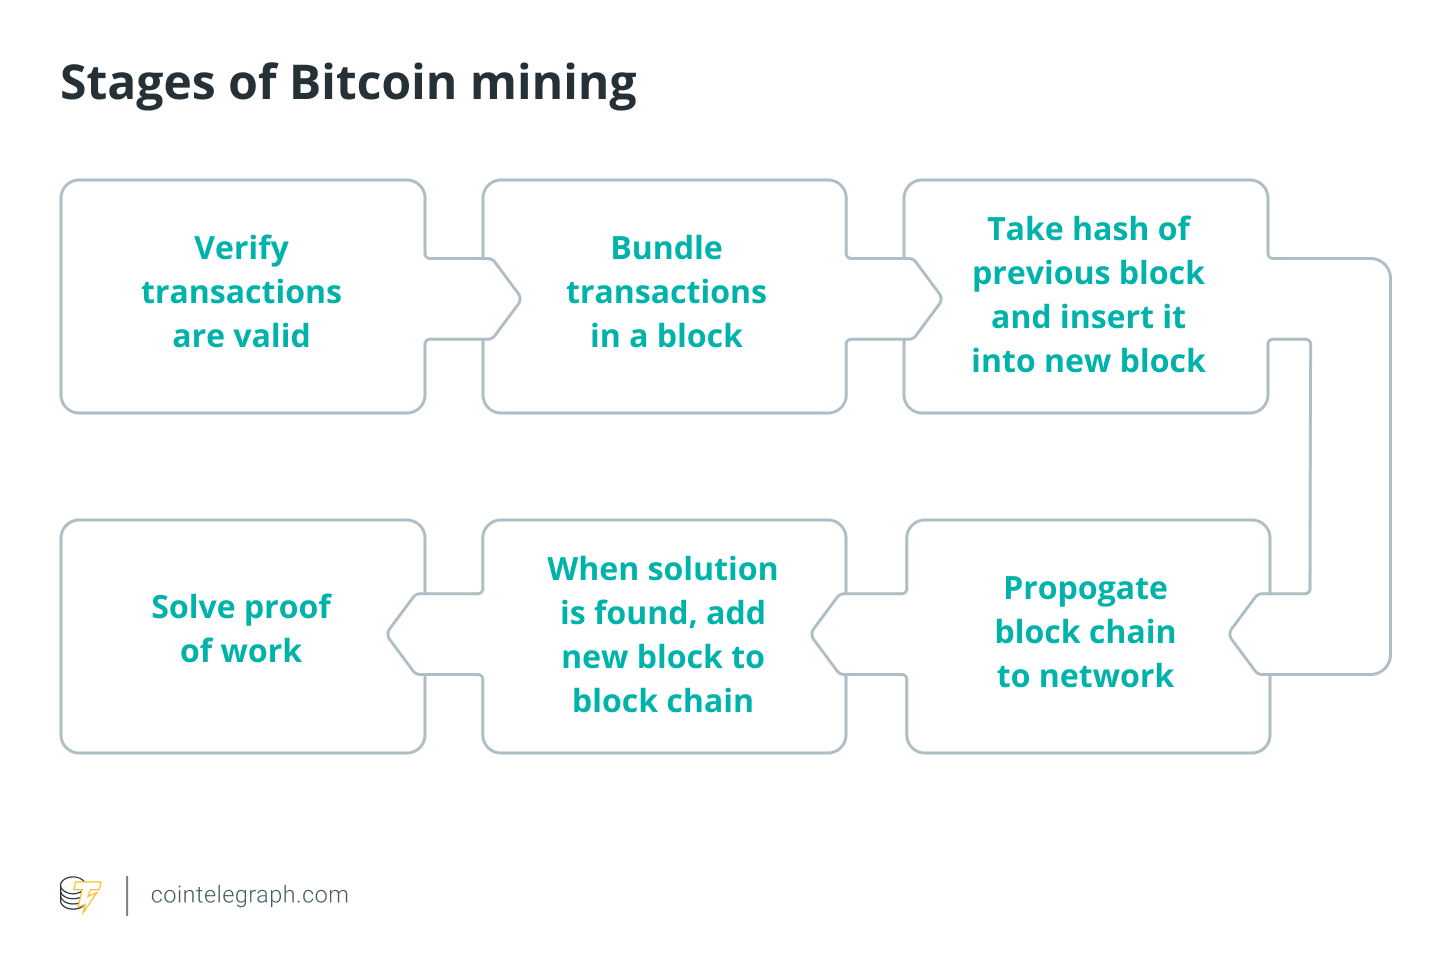 Stages of Bitcoin mining